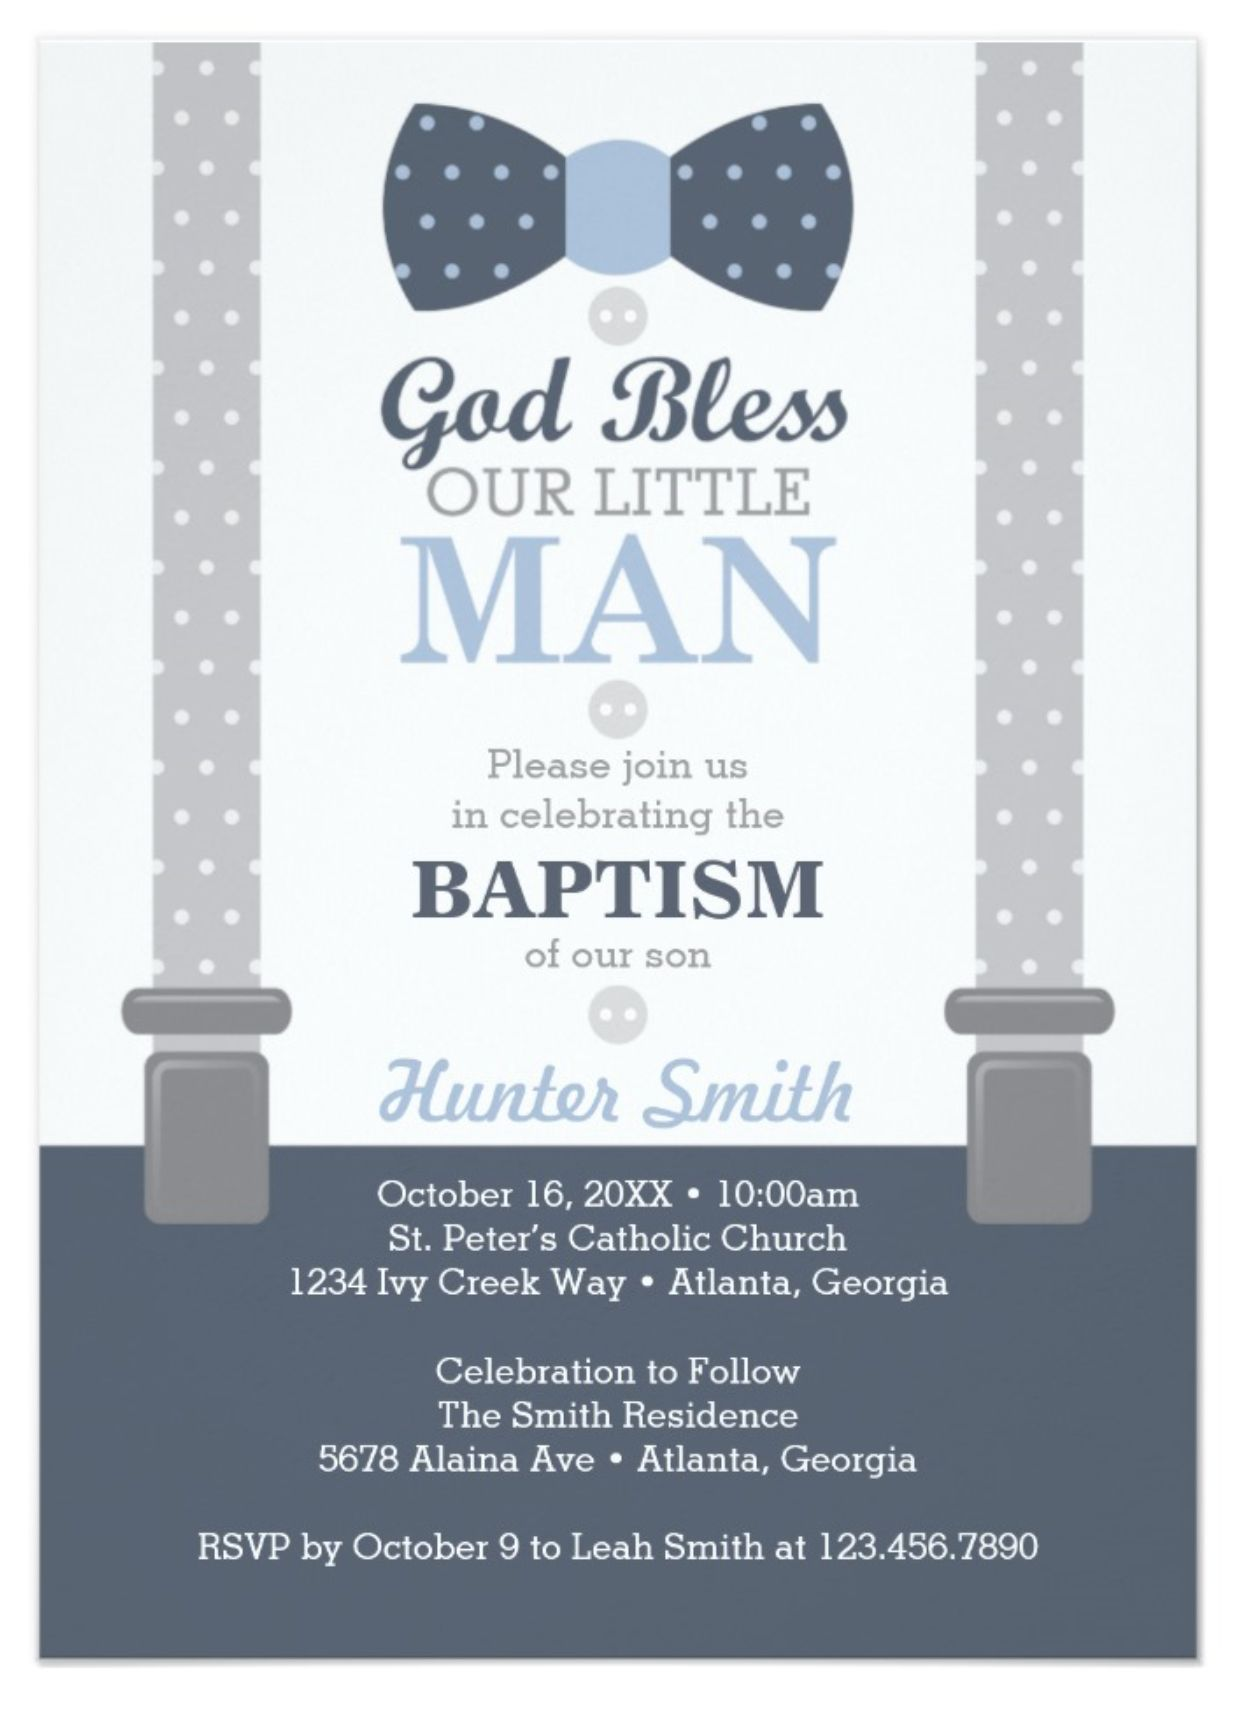 Little Man Baptism Invitation Navy Blue Gray Invitation